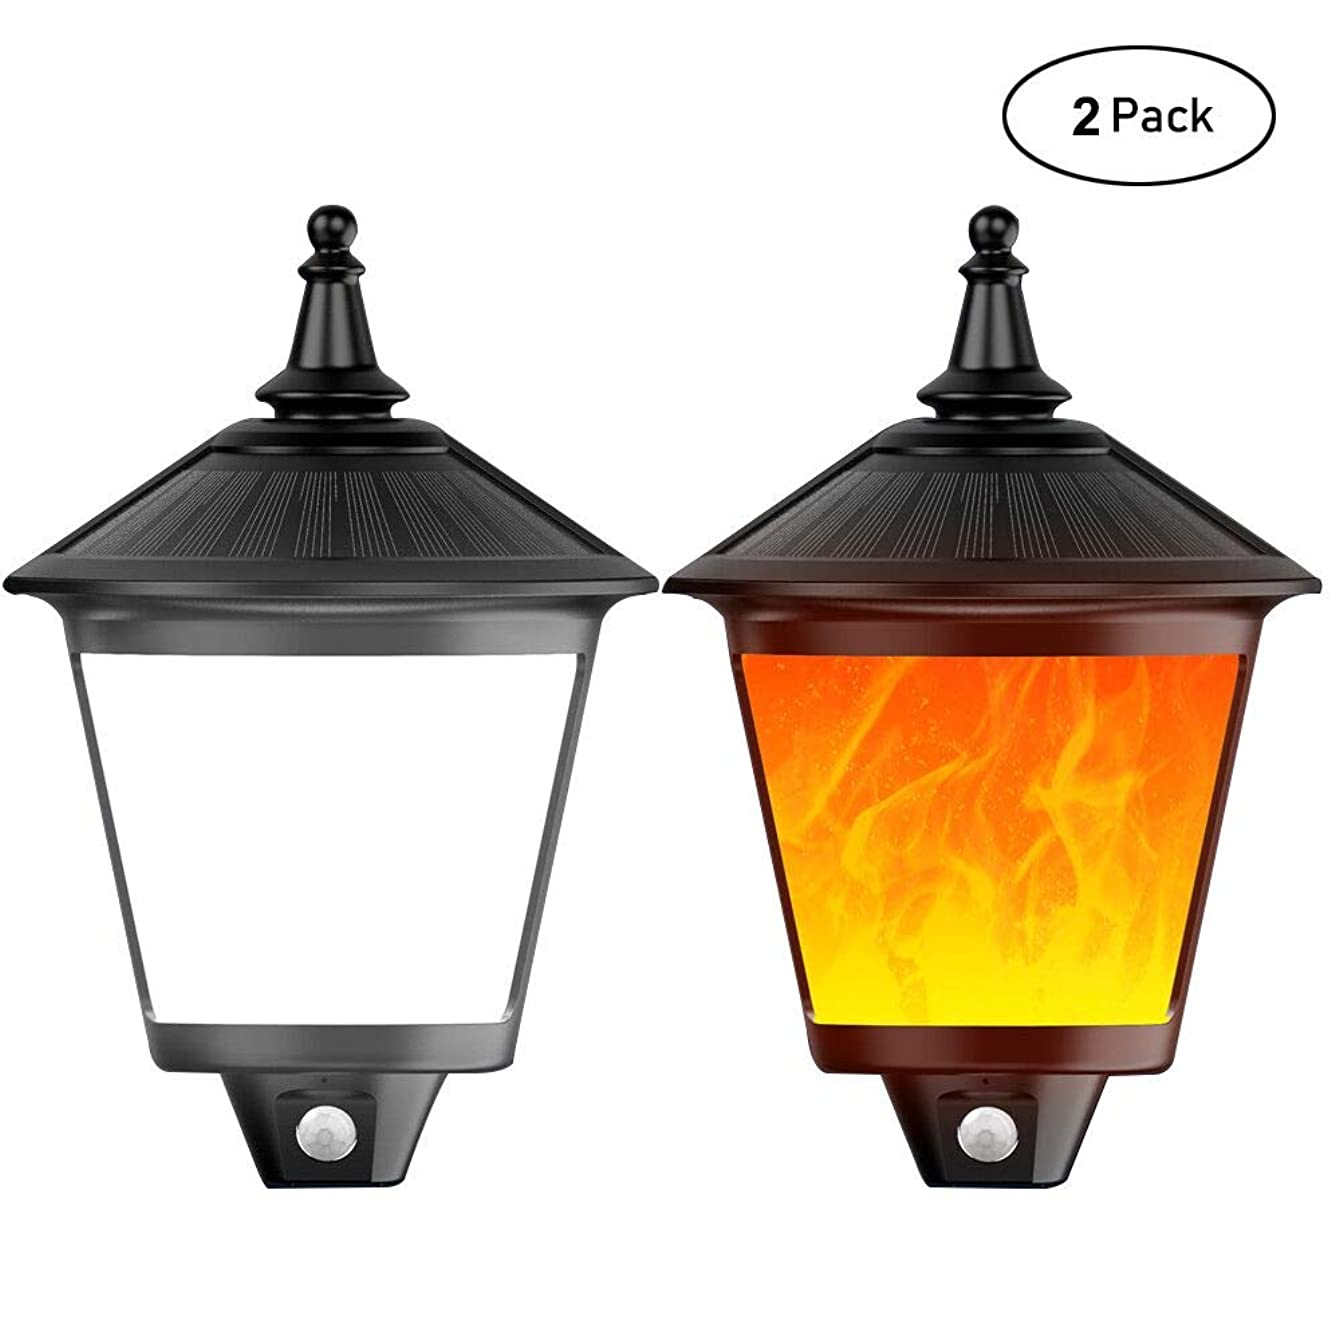 BlueFire Waterproof Solar Lights Solar Torches Lights Flickering Flames LED Solar Wall Lights Outdoor Motion Sensor Activated Night Light Wall Lamp for Path Patio Yard Porch Garden Fence (2 Pack)